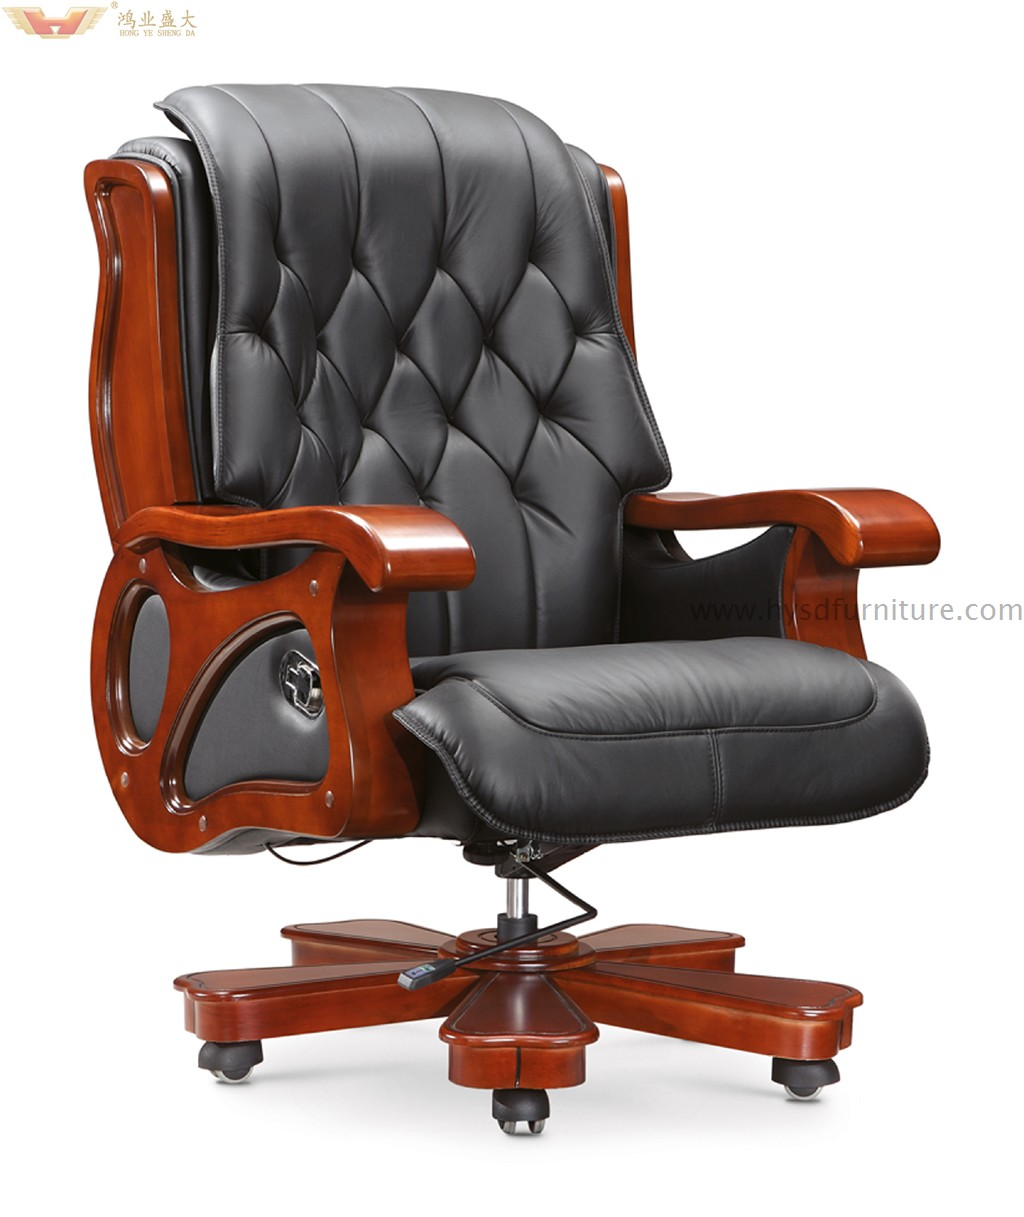 wood and leather executive office chairs berkline massage chair antique furniture luxury wooden a 012 swivel with armrest modern traditional